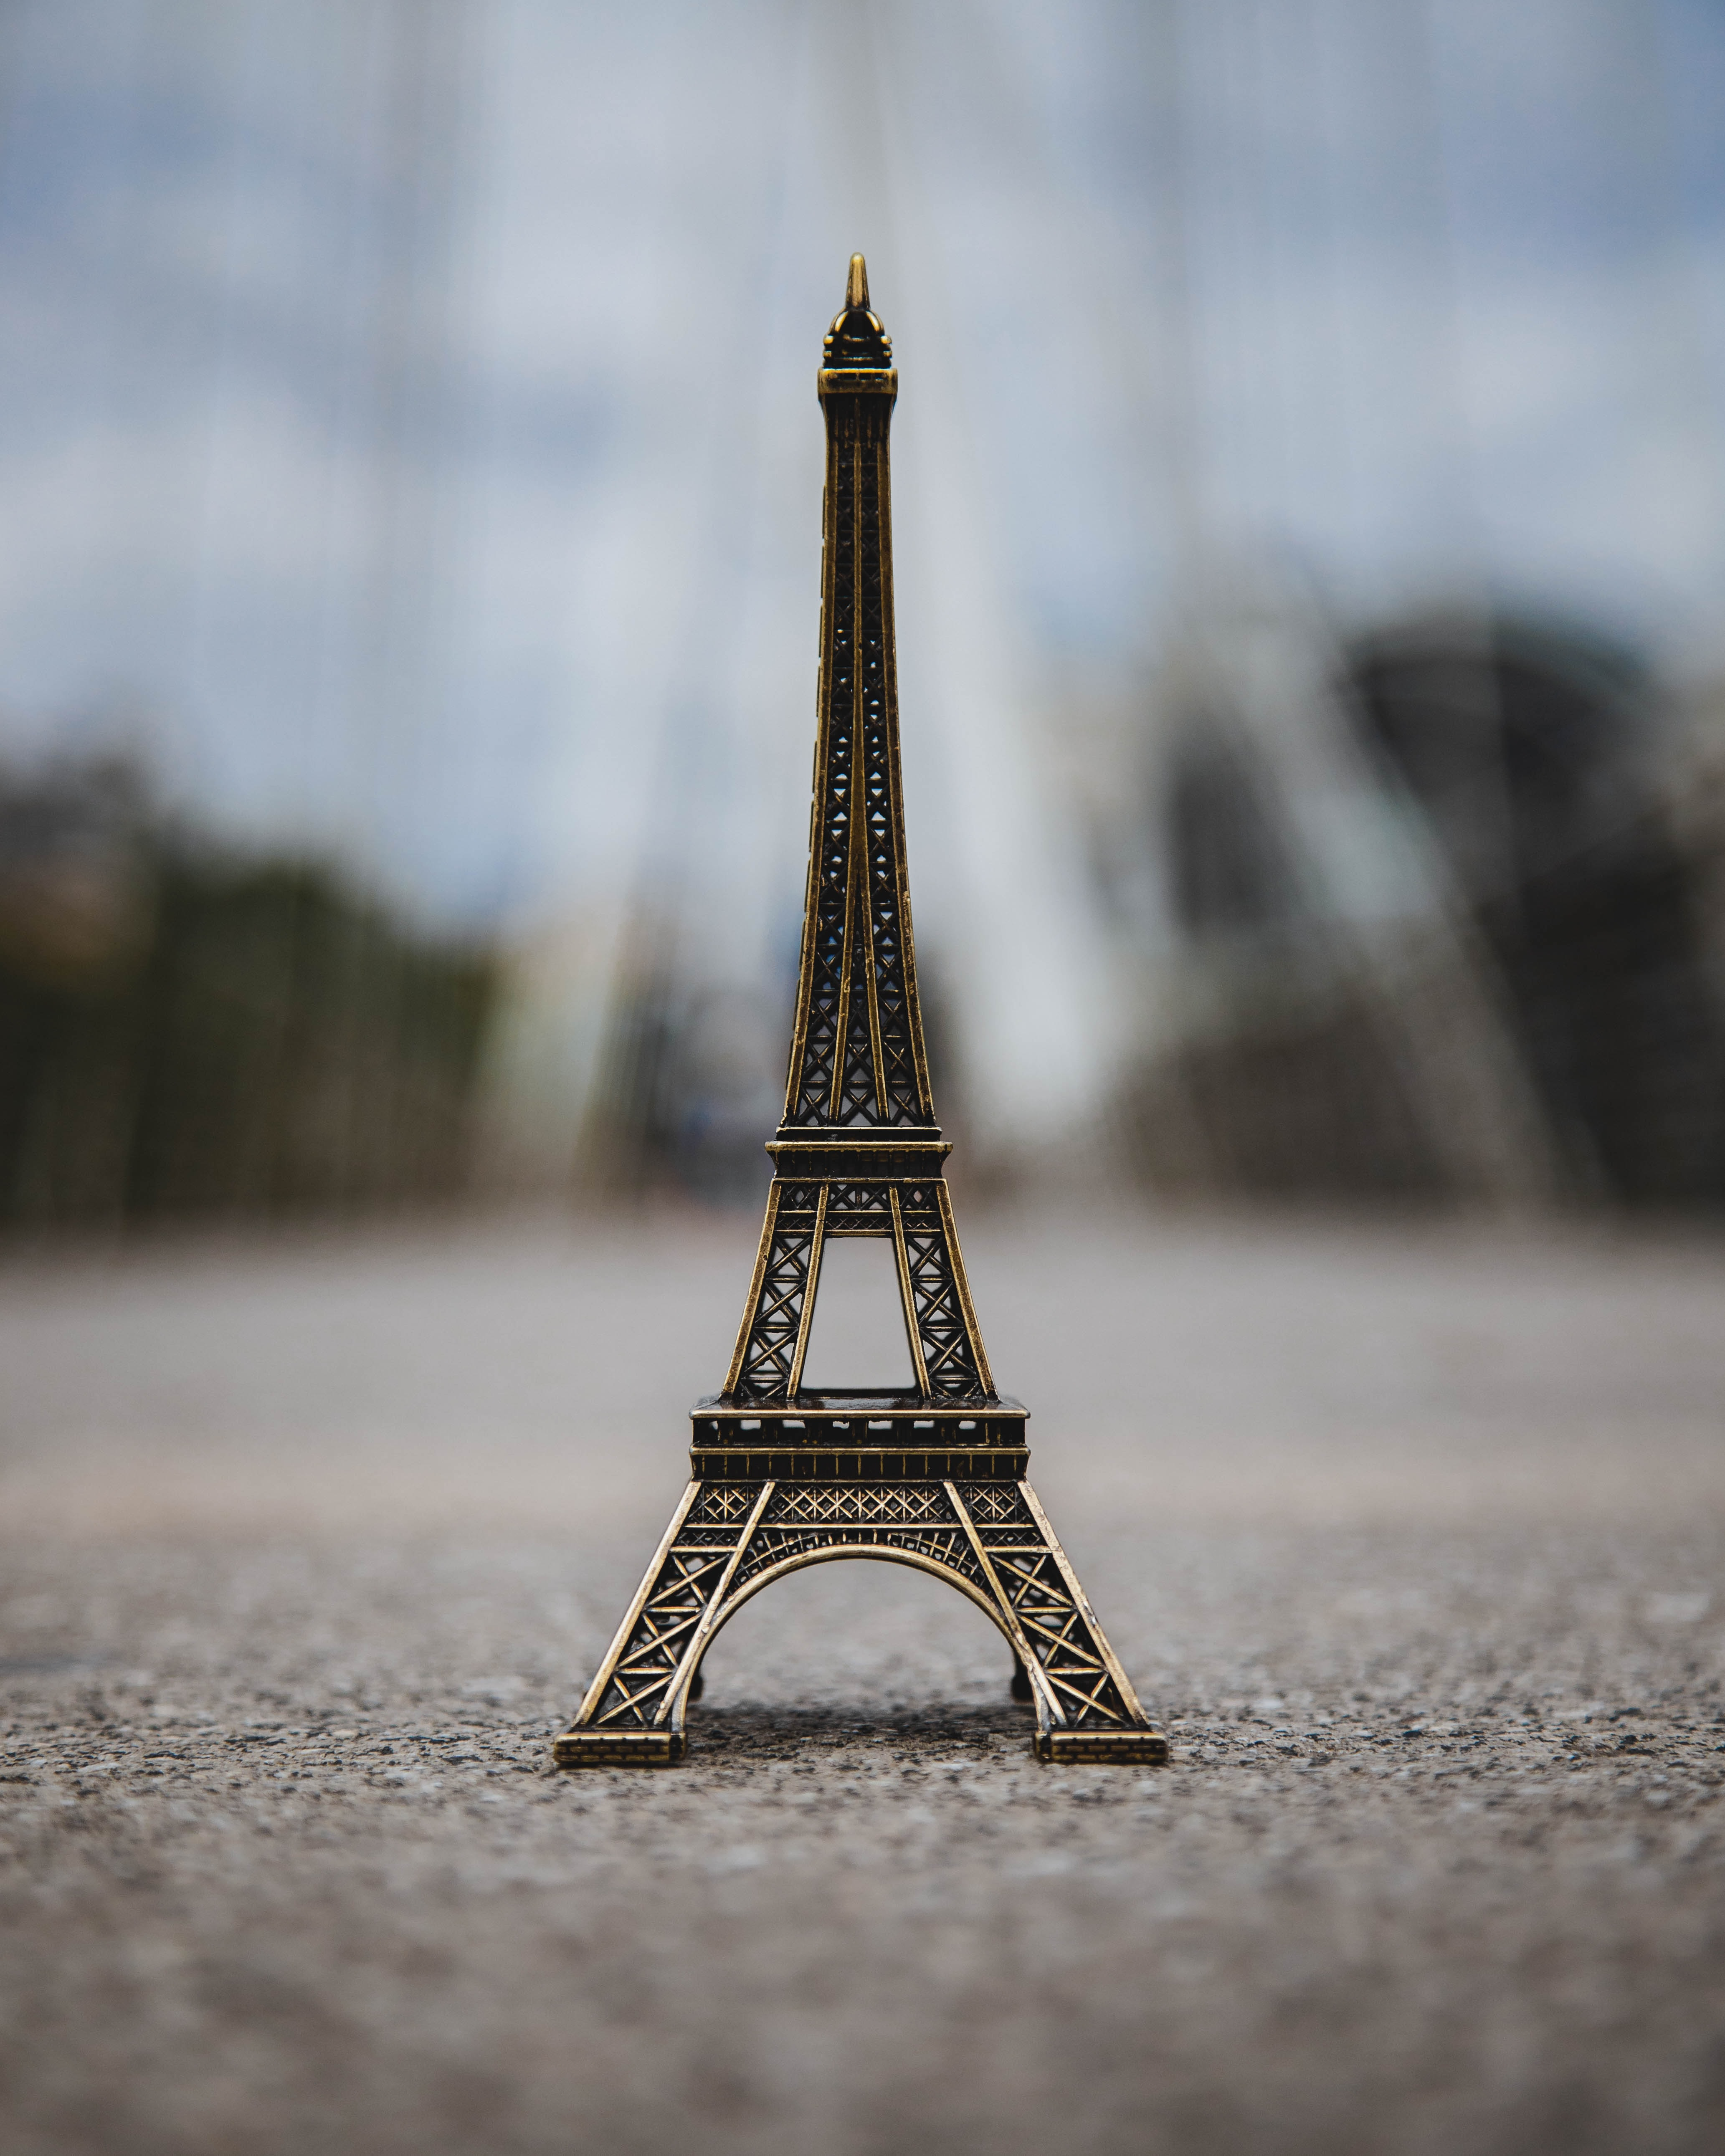 close up photography of brass-colored Eiffel Tower miniature